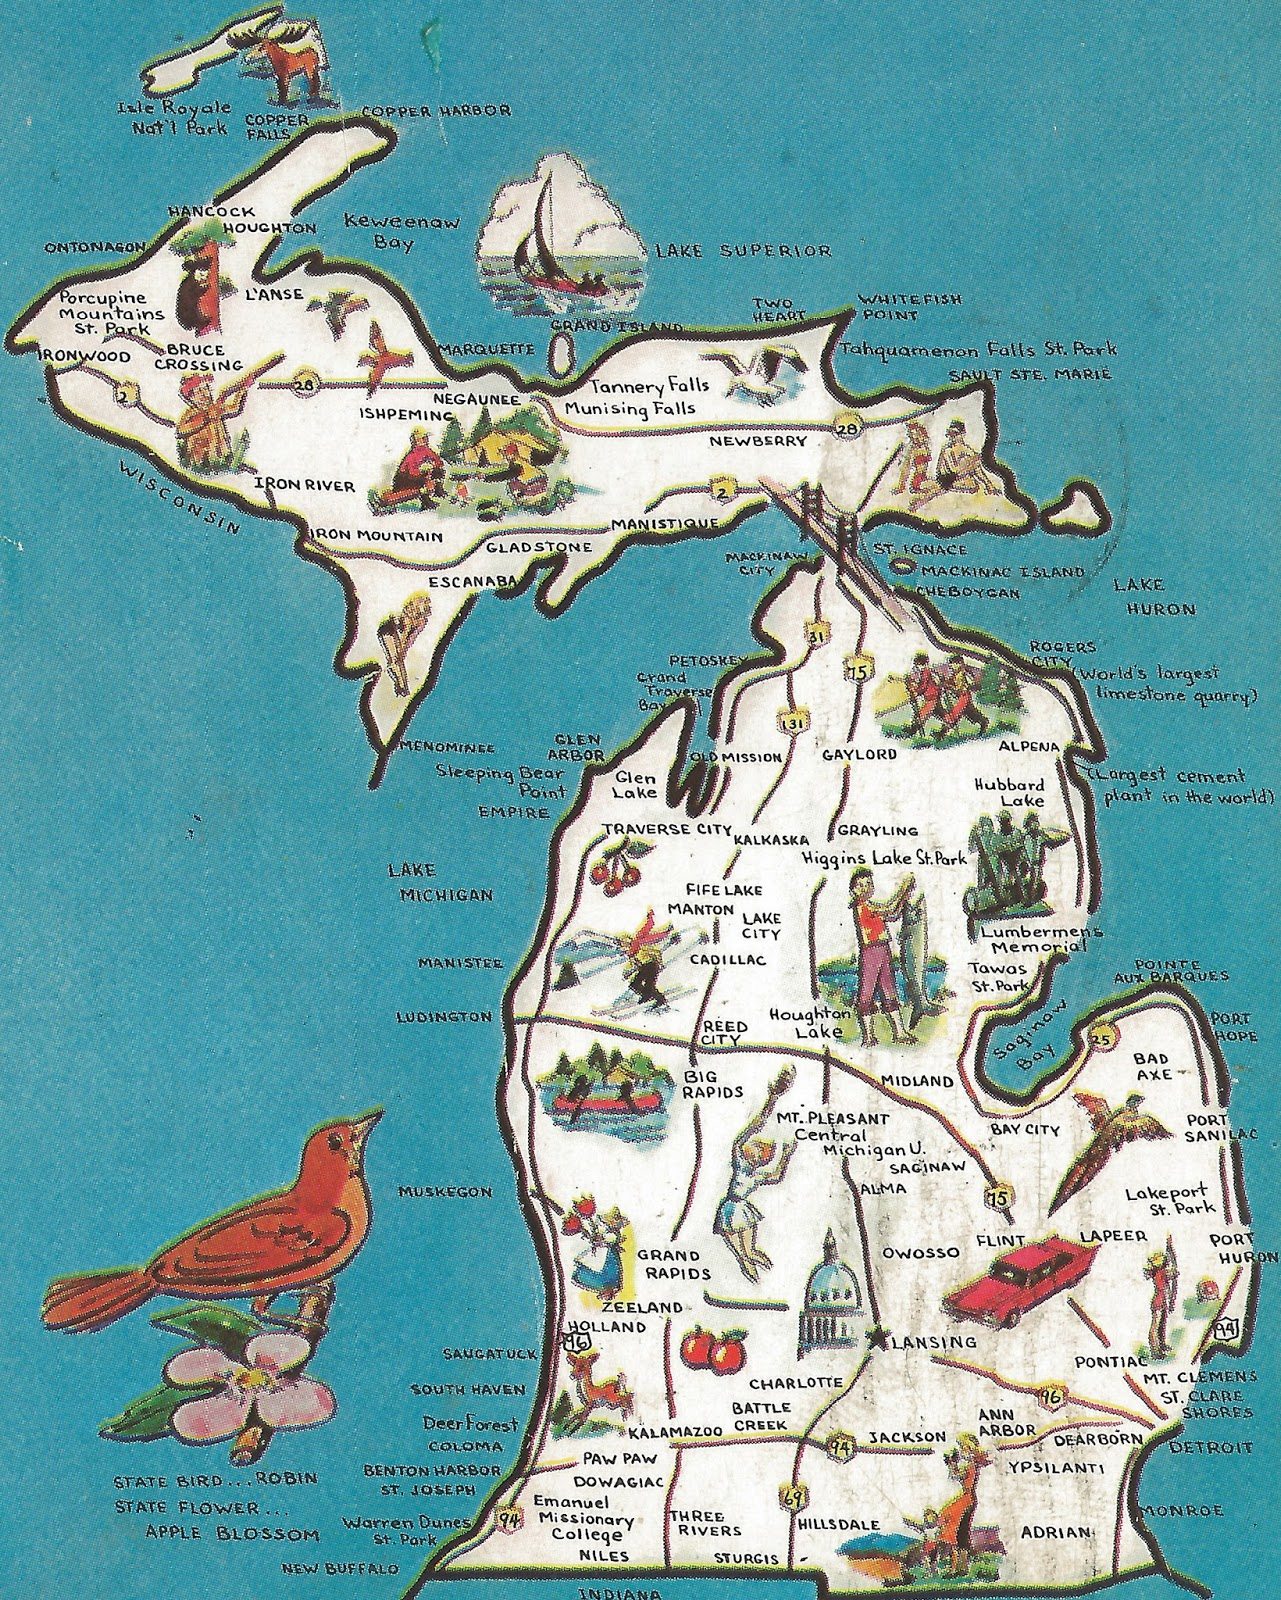 Discover the blue ten fun facts for michigans 180th birthday ten fun facts for michigans 180th birthday m4hsunfo